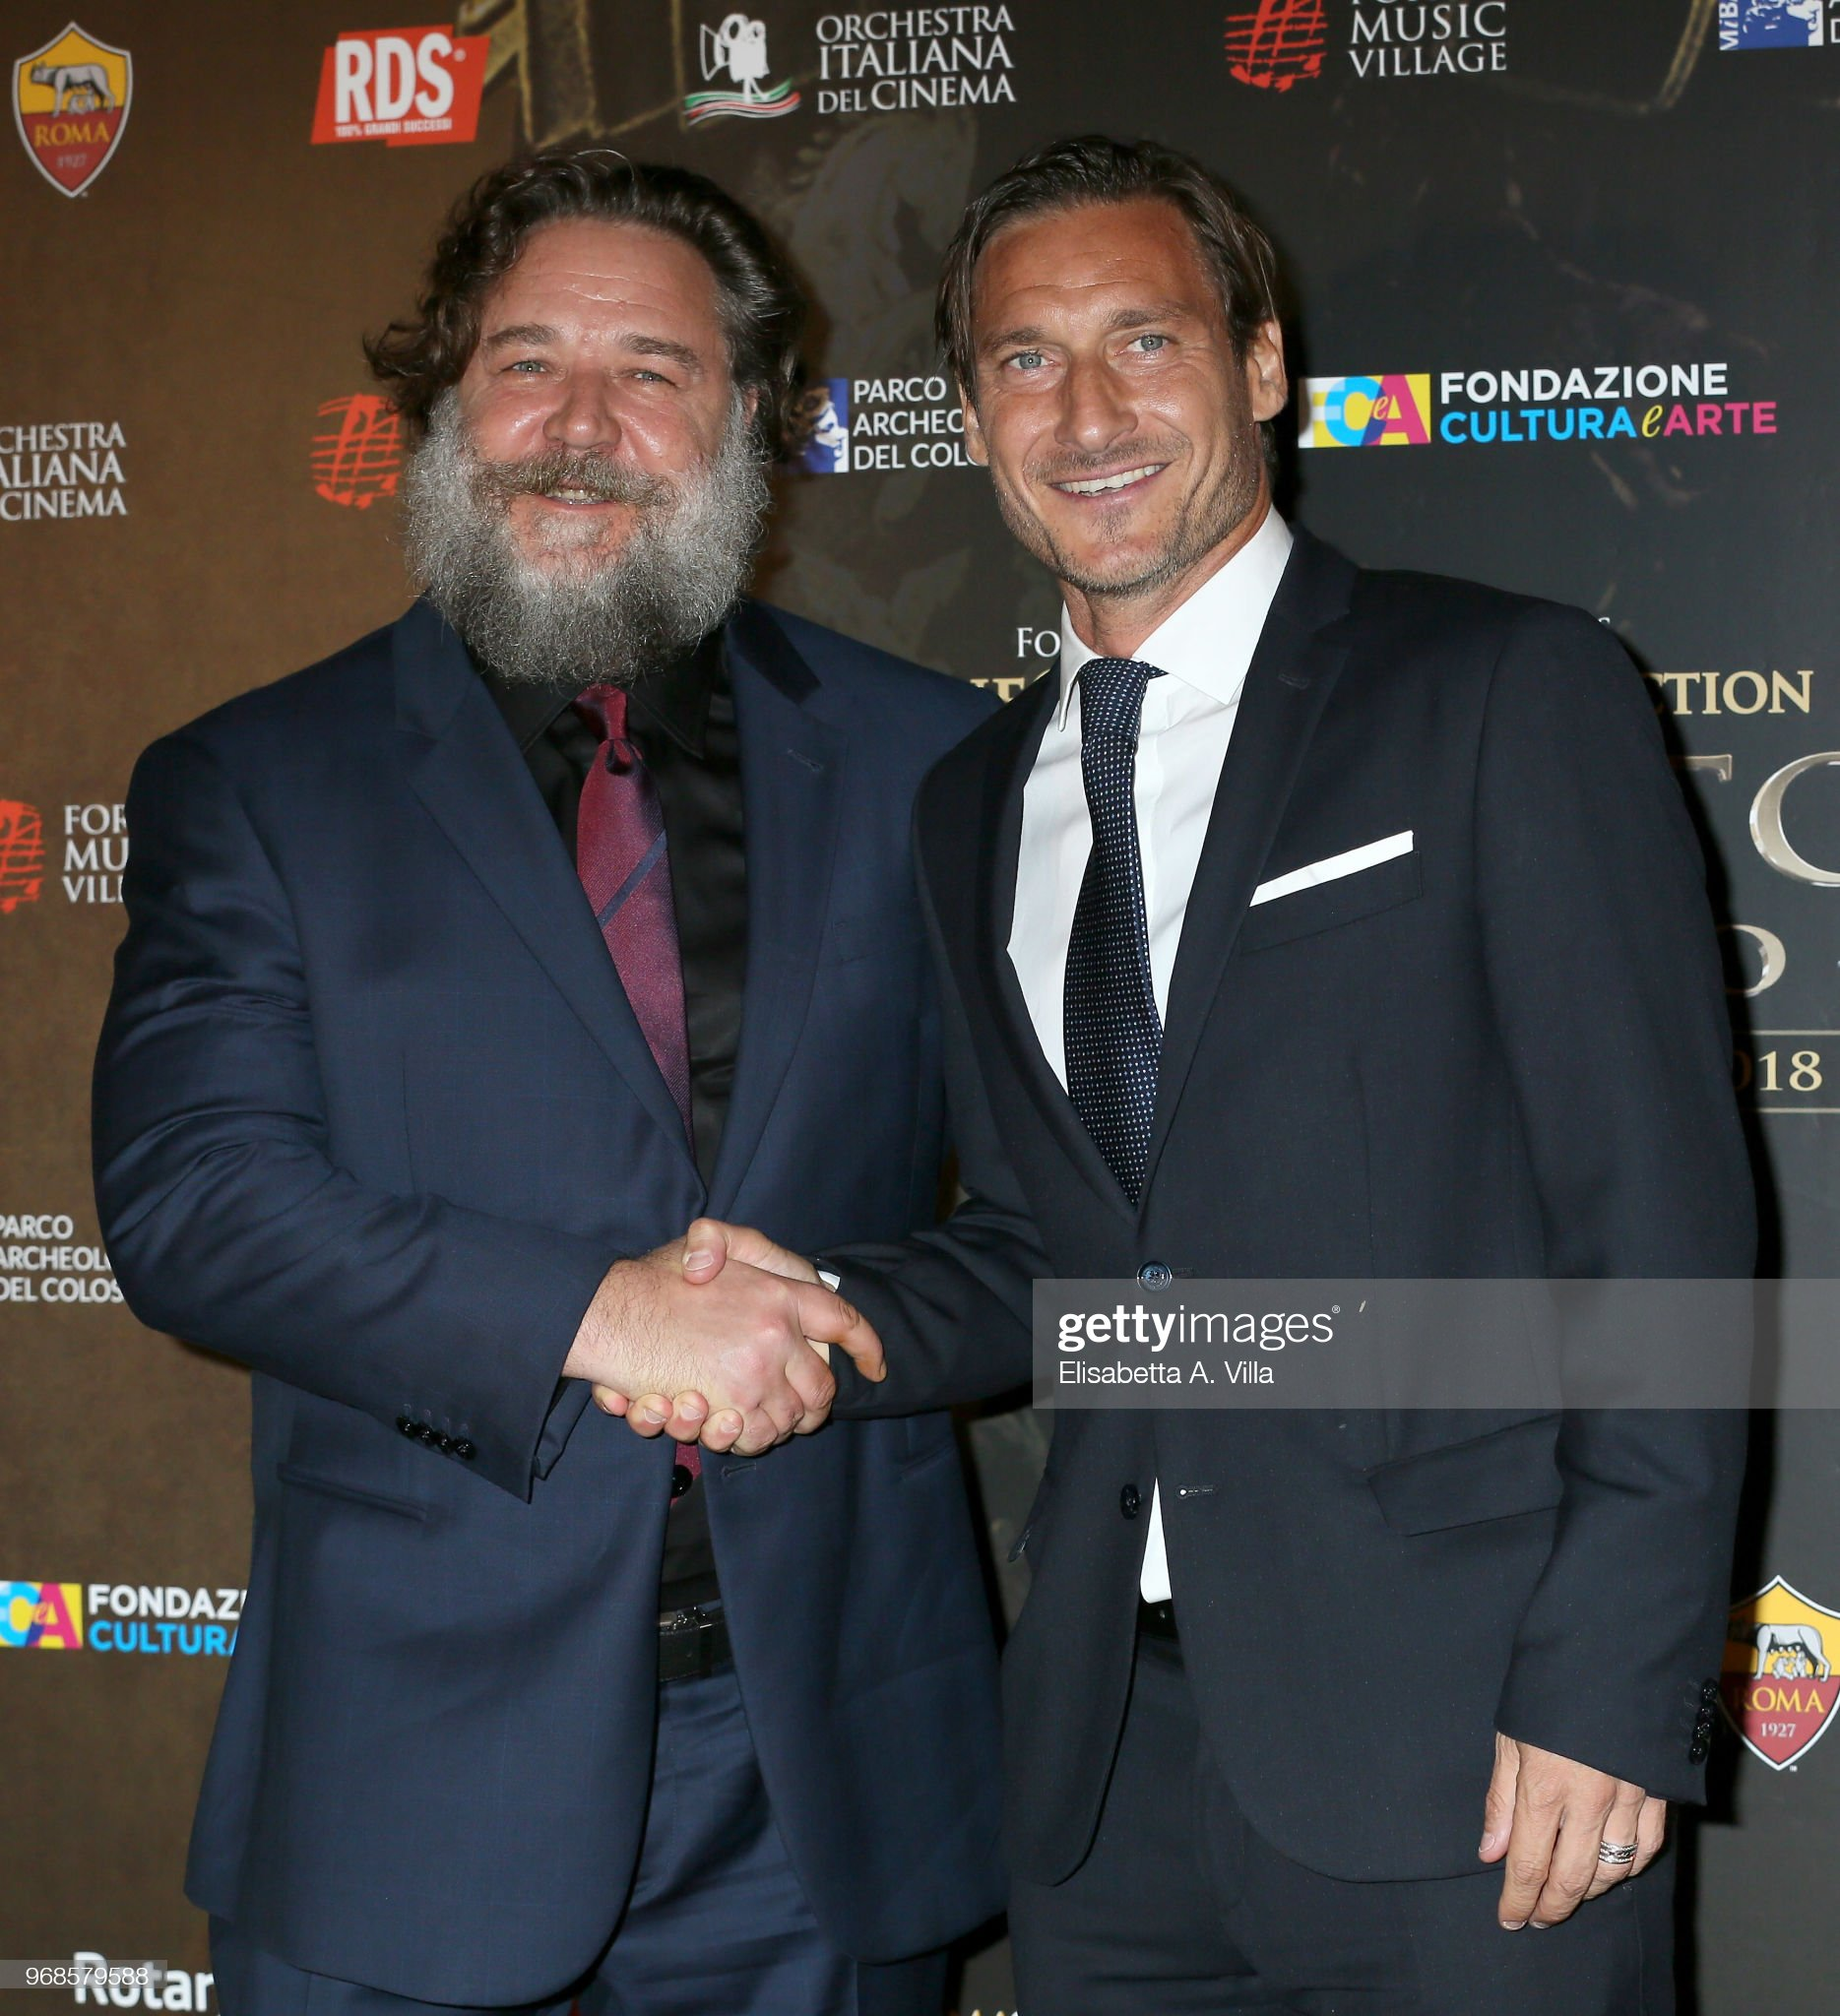 ¿Cuánto mide Russell Crowe? - Real height Russell-crowe-and-francesco-totti-attend-the-il-gladiatore-in-night-picture-id968579588?s=2048x2048